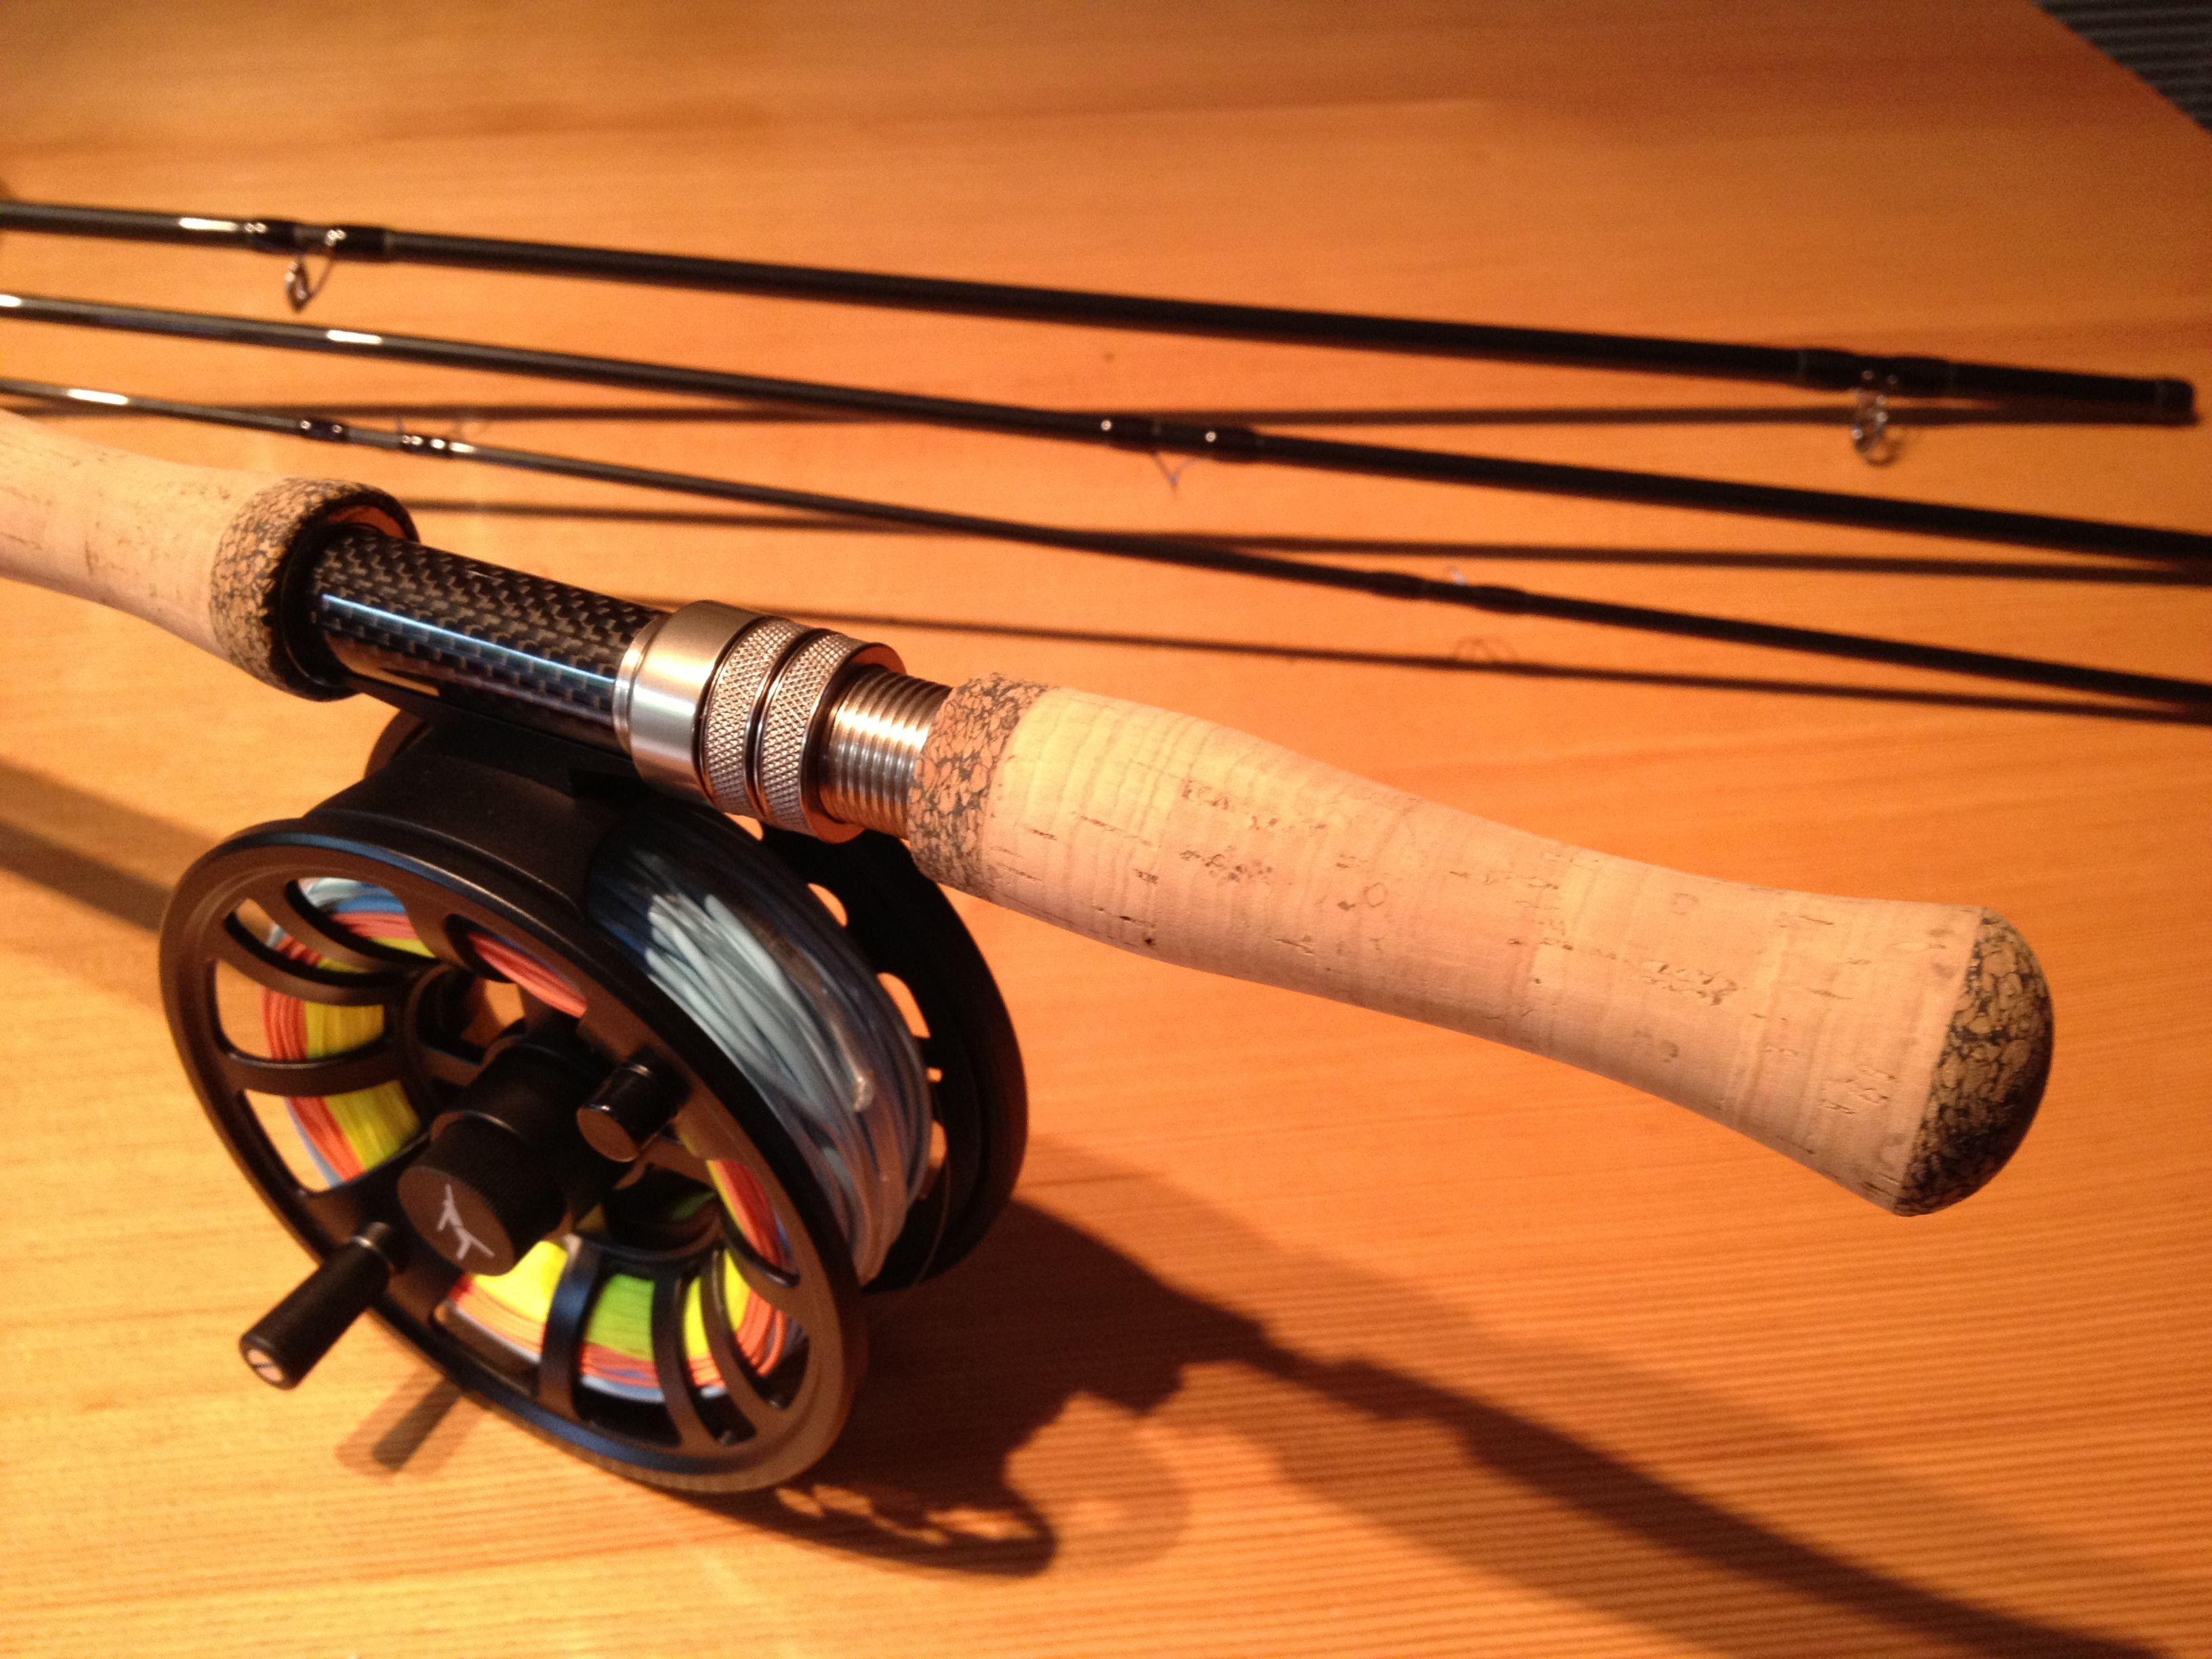 Echo Dh7130 7wt 13 Spey Rod With An Echo Ion 10 12wt Reel Loaded With Airflow Scandi Compact And Ridge Running Lin Steelhead Flies Fly Rods Fly Fishing Gear